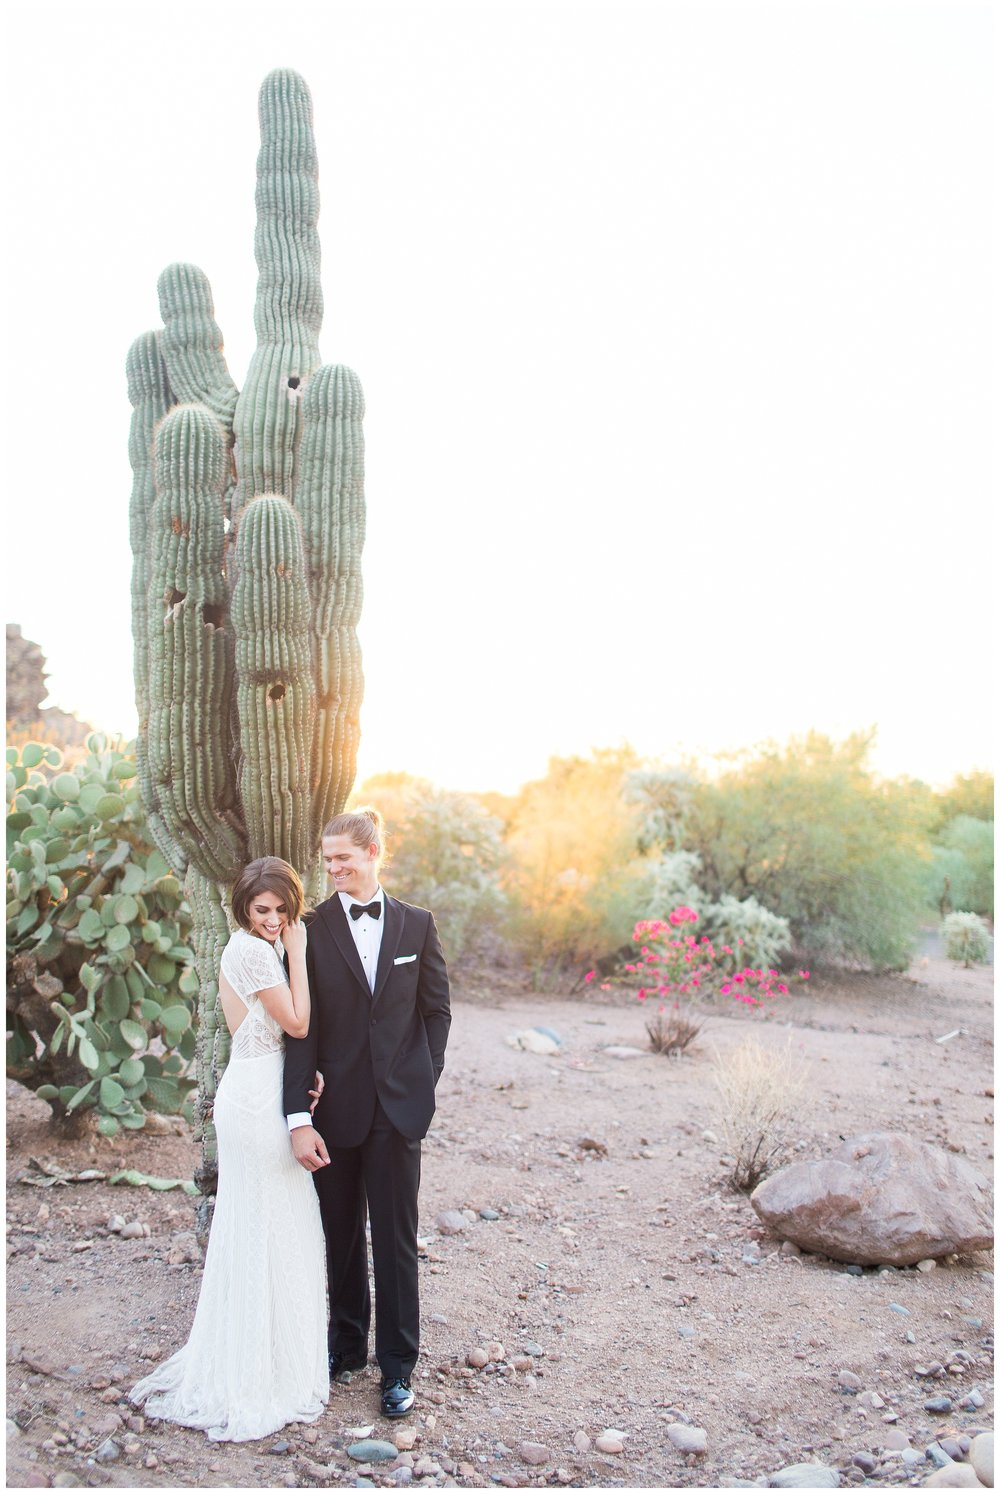 Arizona_Tempe_Wedding_0011.jpg